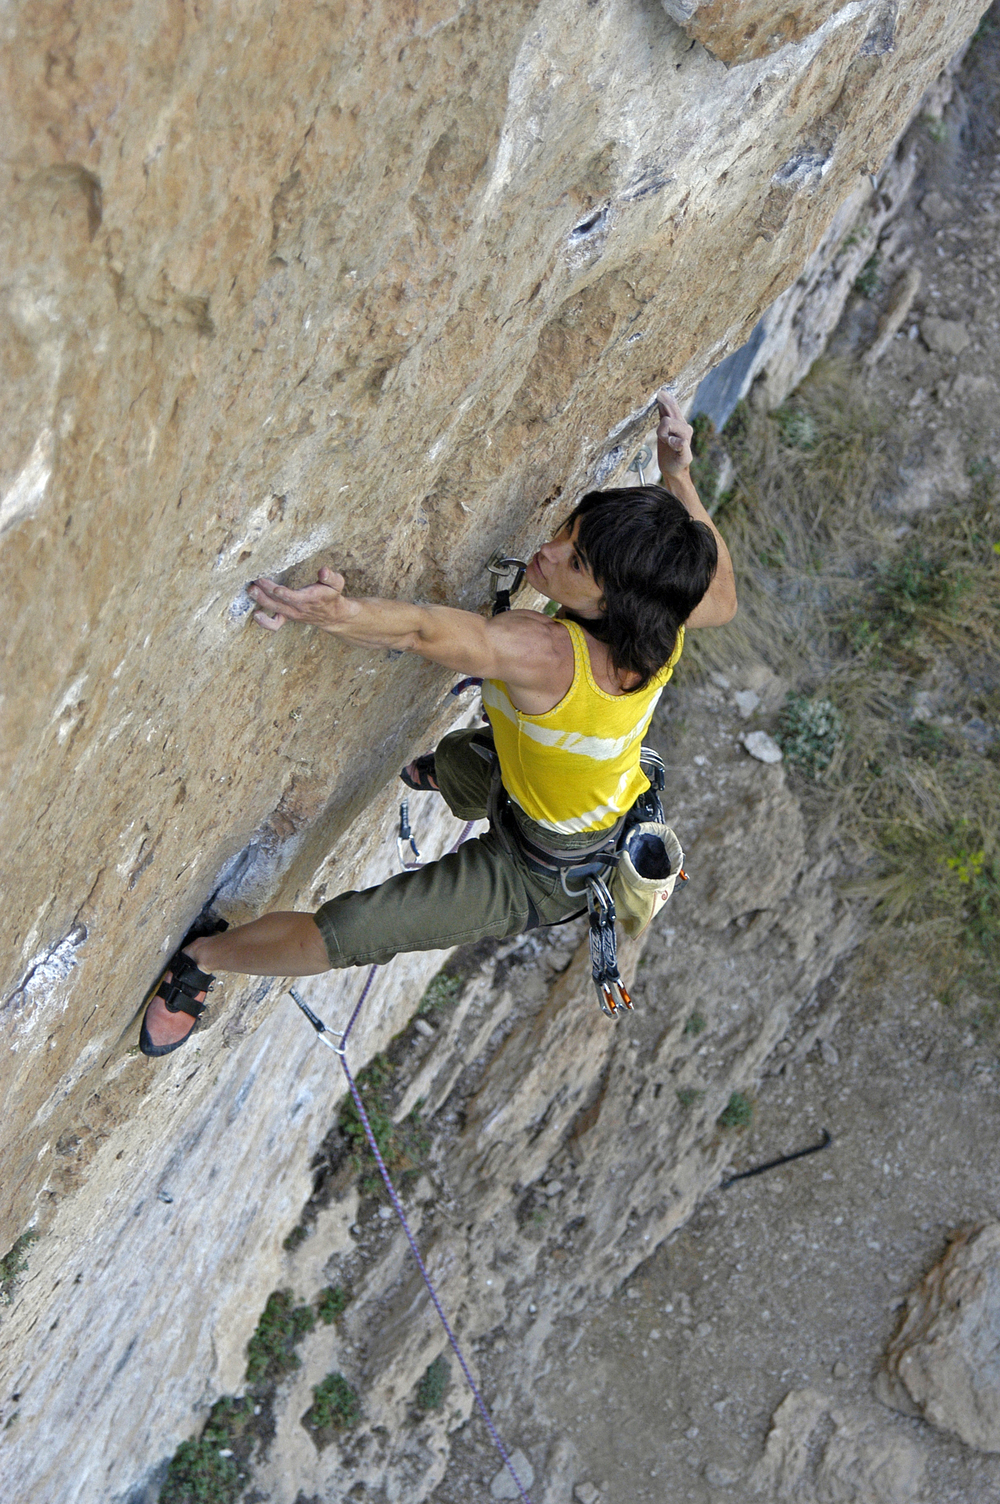 Eva on her first 8c, Nuria, Cuenca. Photo by Jose Yañez